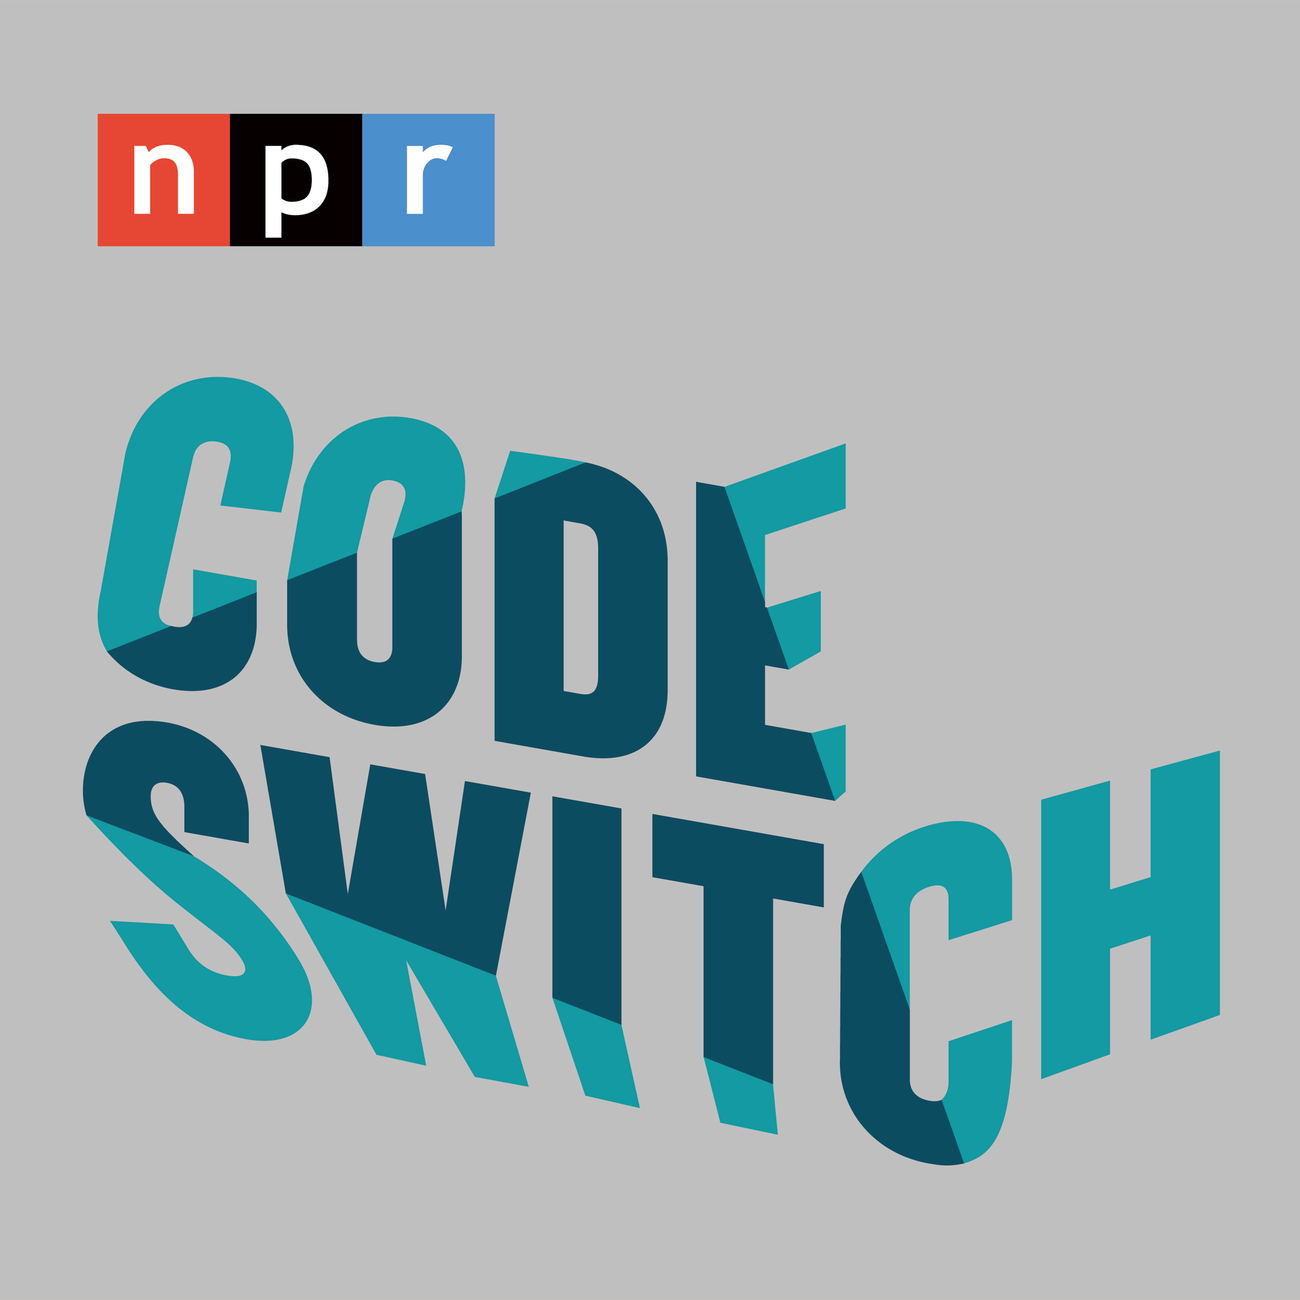 Npr Podcastlogo: Introducing 'Code Switch,' The Podcast : NPR